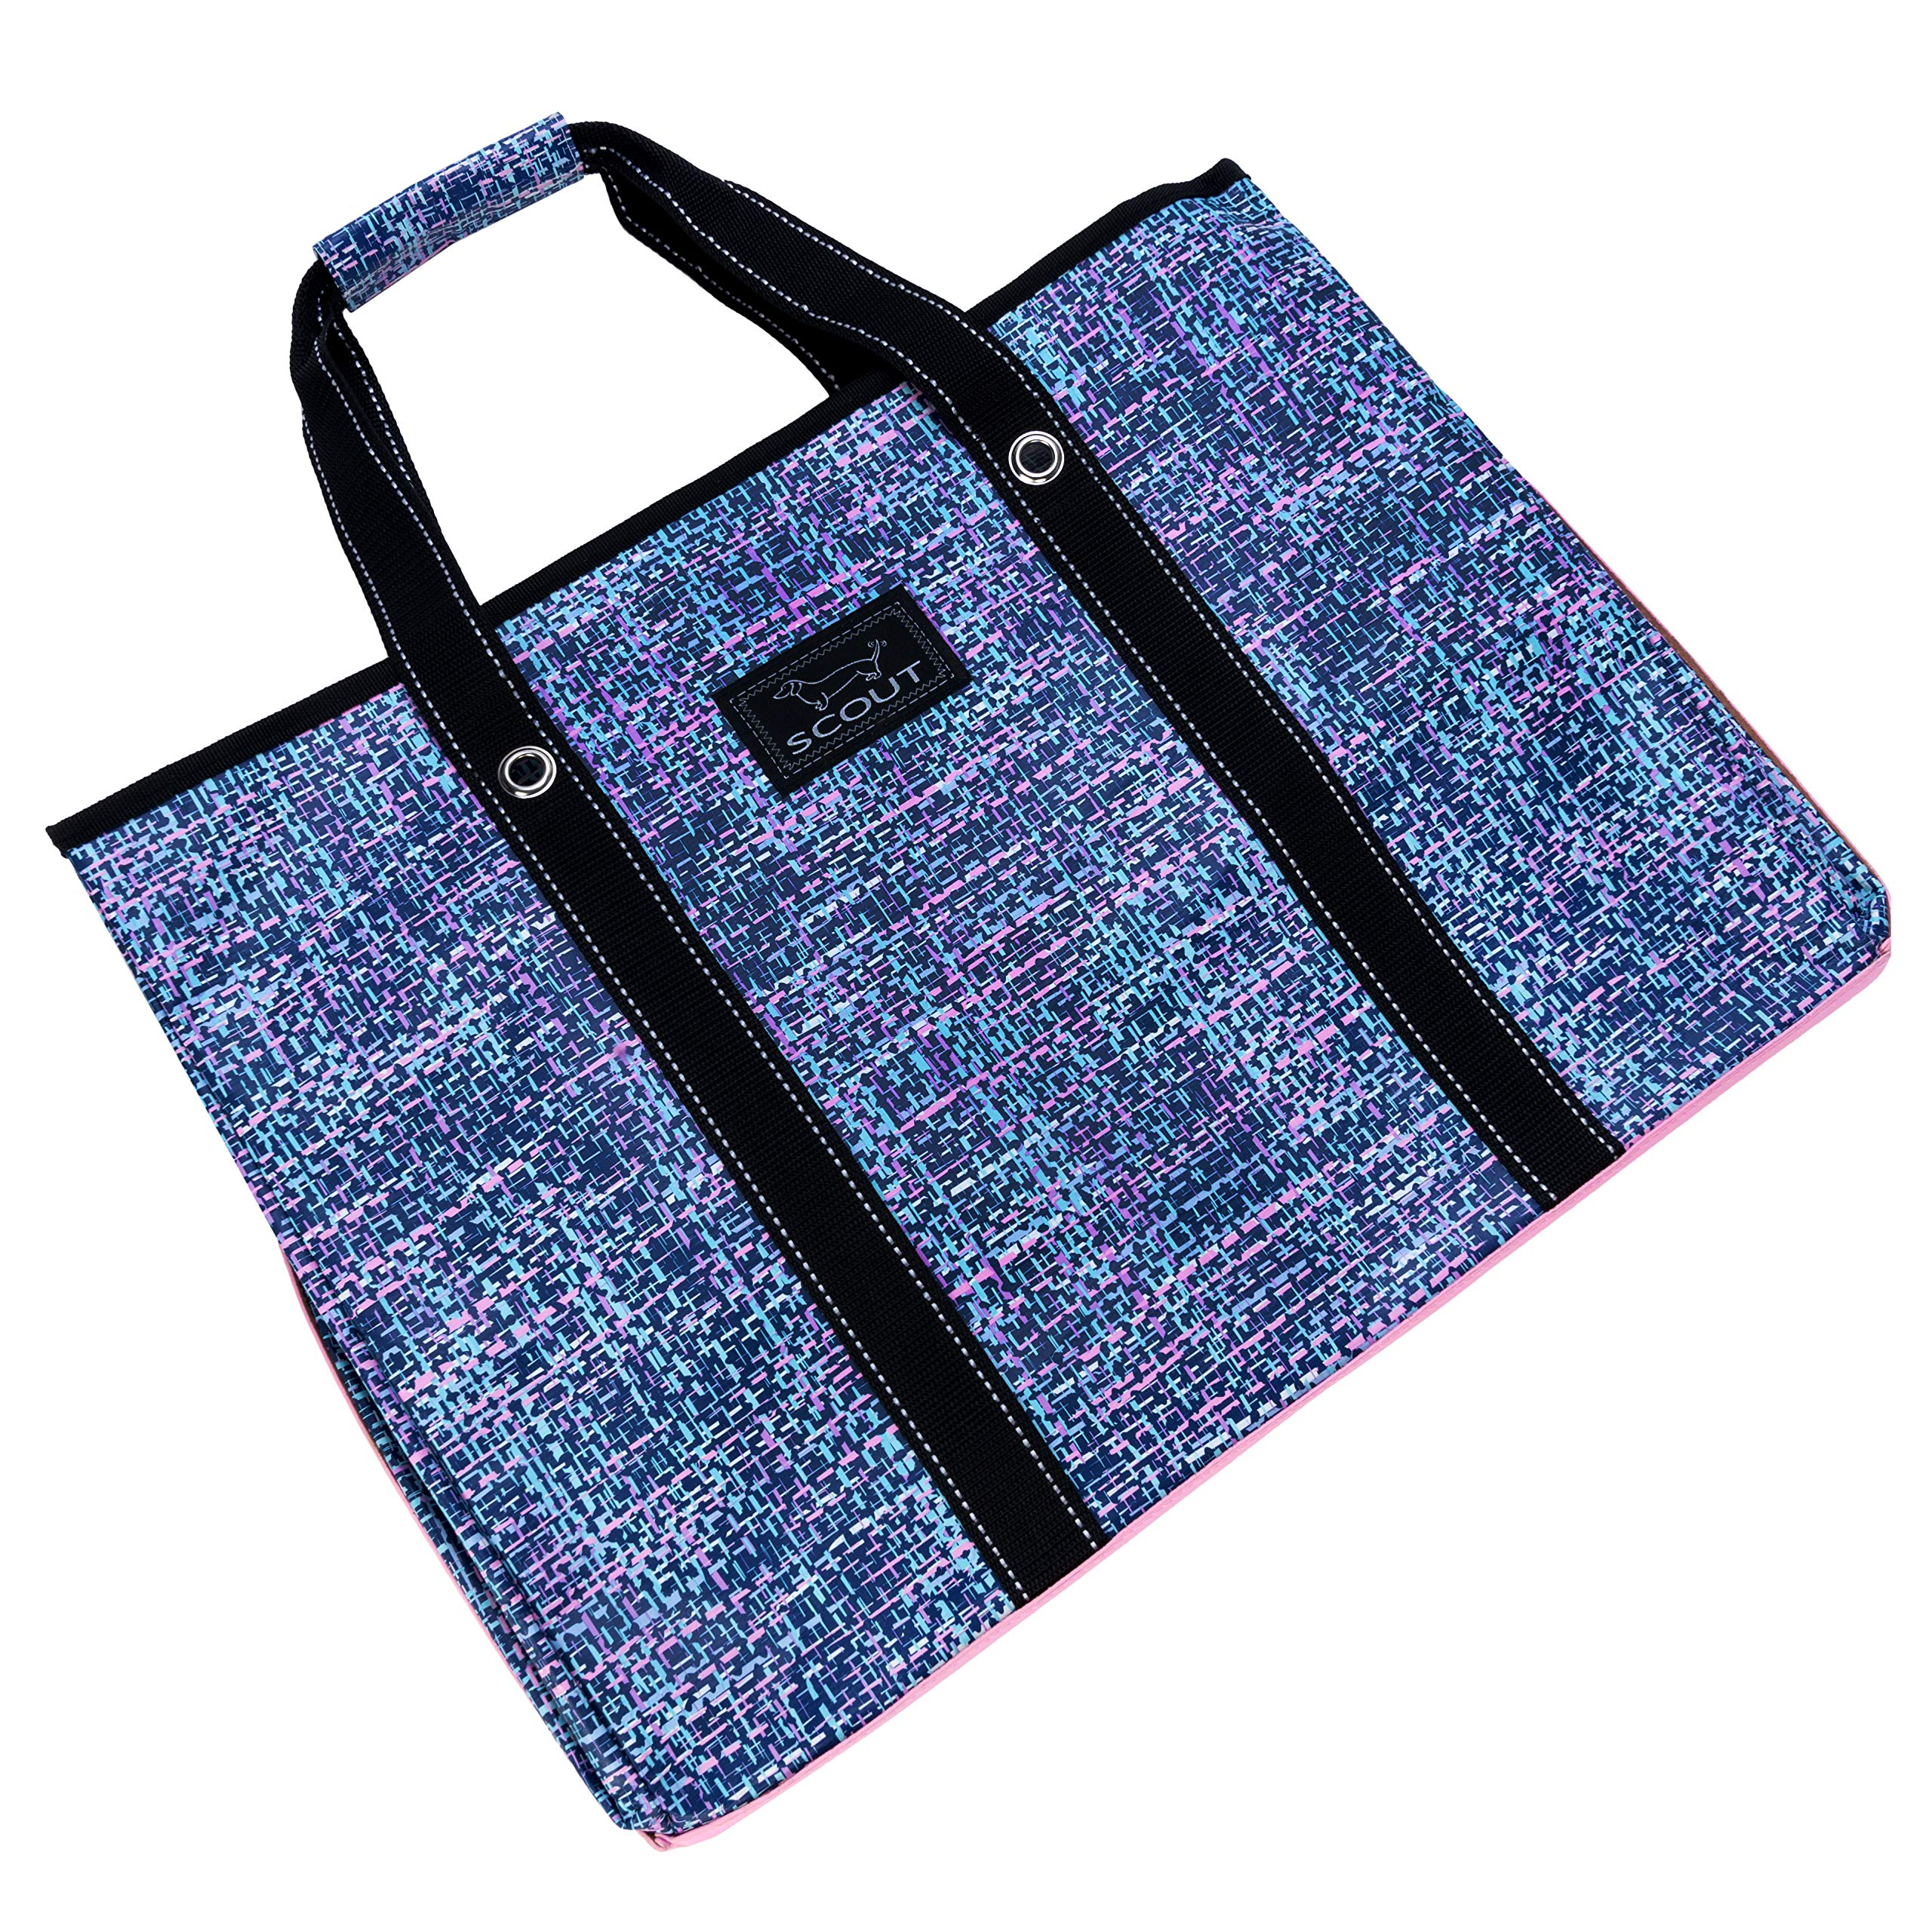 SCOUT 3 Girls Bag, Extra Large Water Resistant, Tote Bag, For the Beach, Pool and Everyday Use, Zips Closed, Tweedy Bird by SCOUT (Image #3)